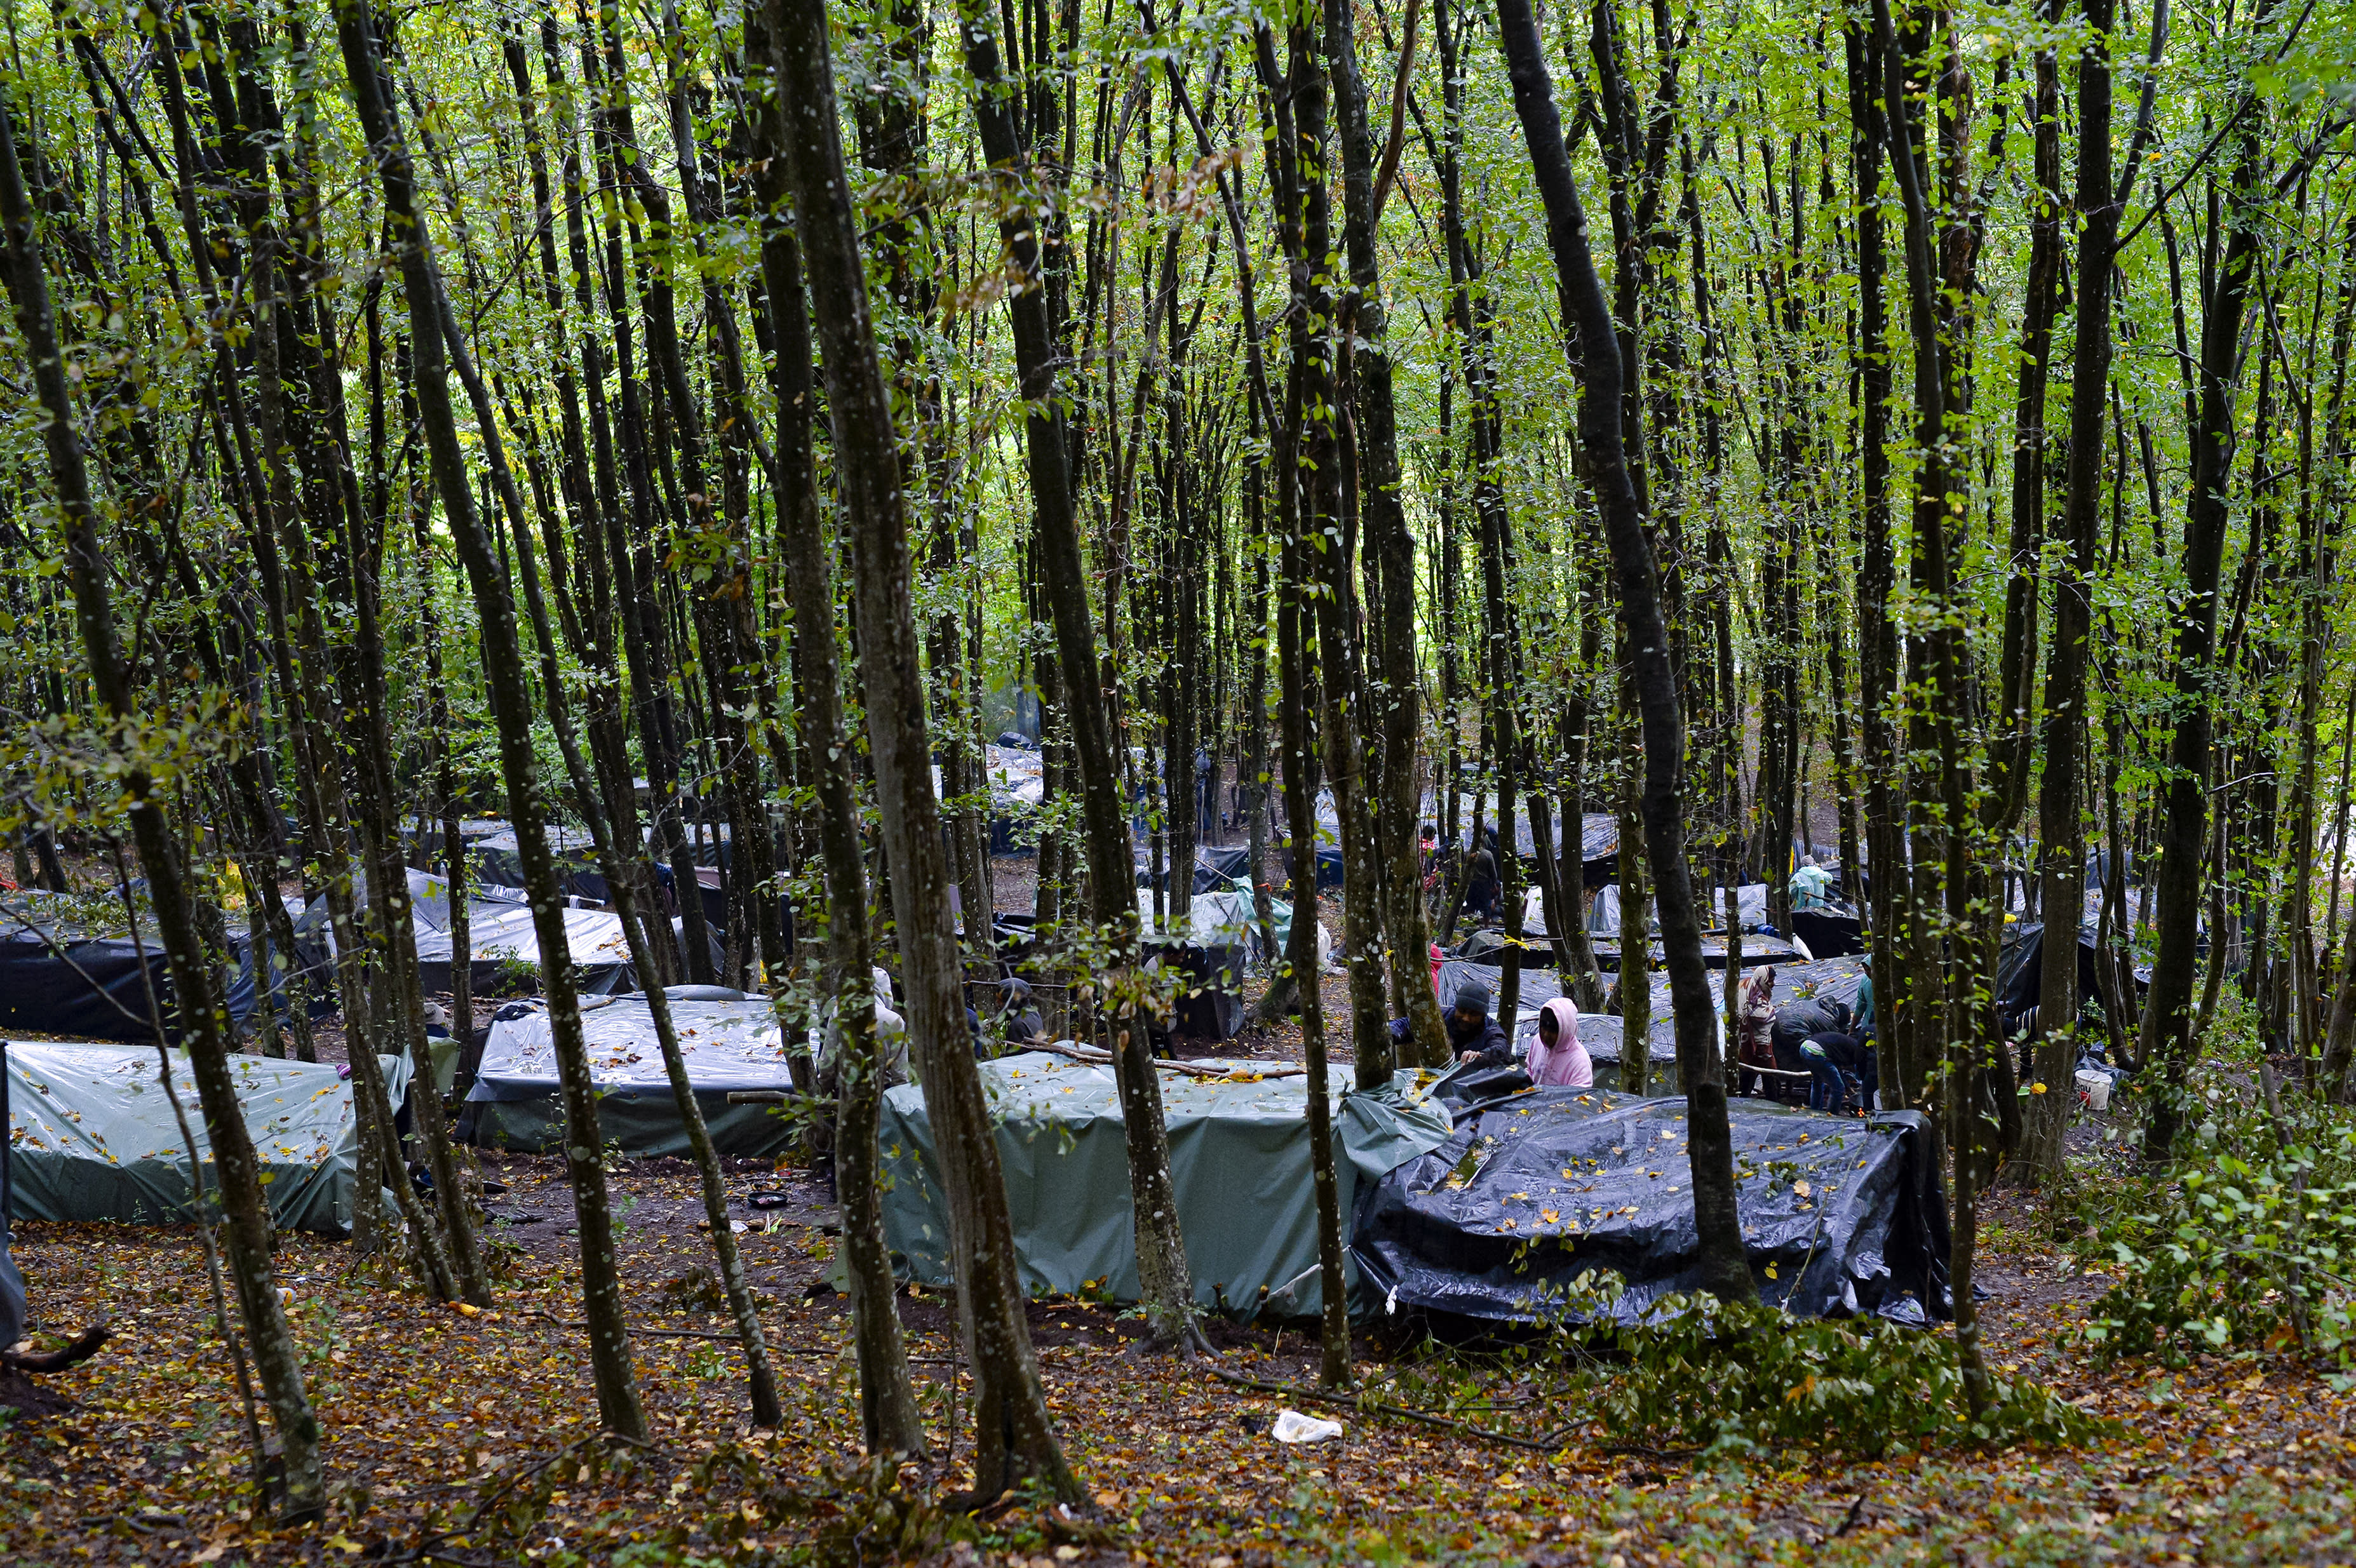 Migrants stand around improvised tents in a makeshift camp in the woods outside Velika Kladusa, Bosnia, Saturday, Sept. 26, 2020.(AP Photo/Kemal Softic)